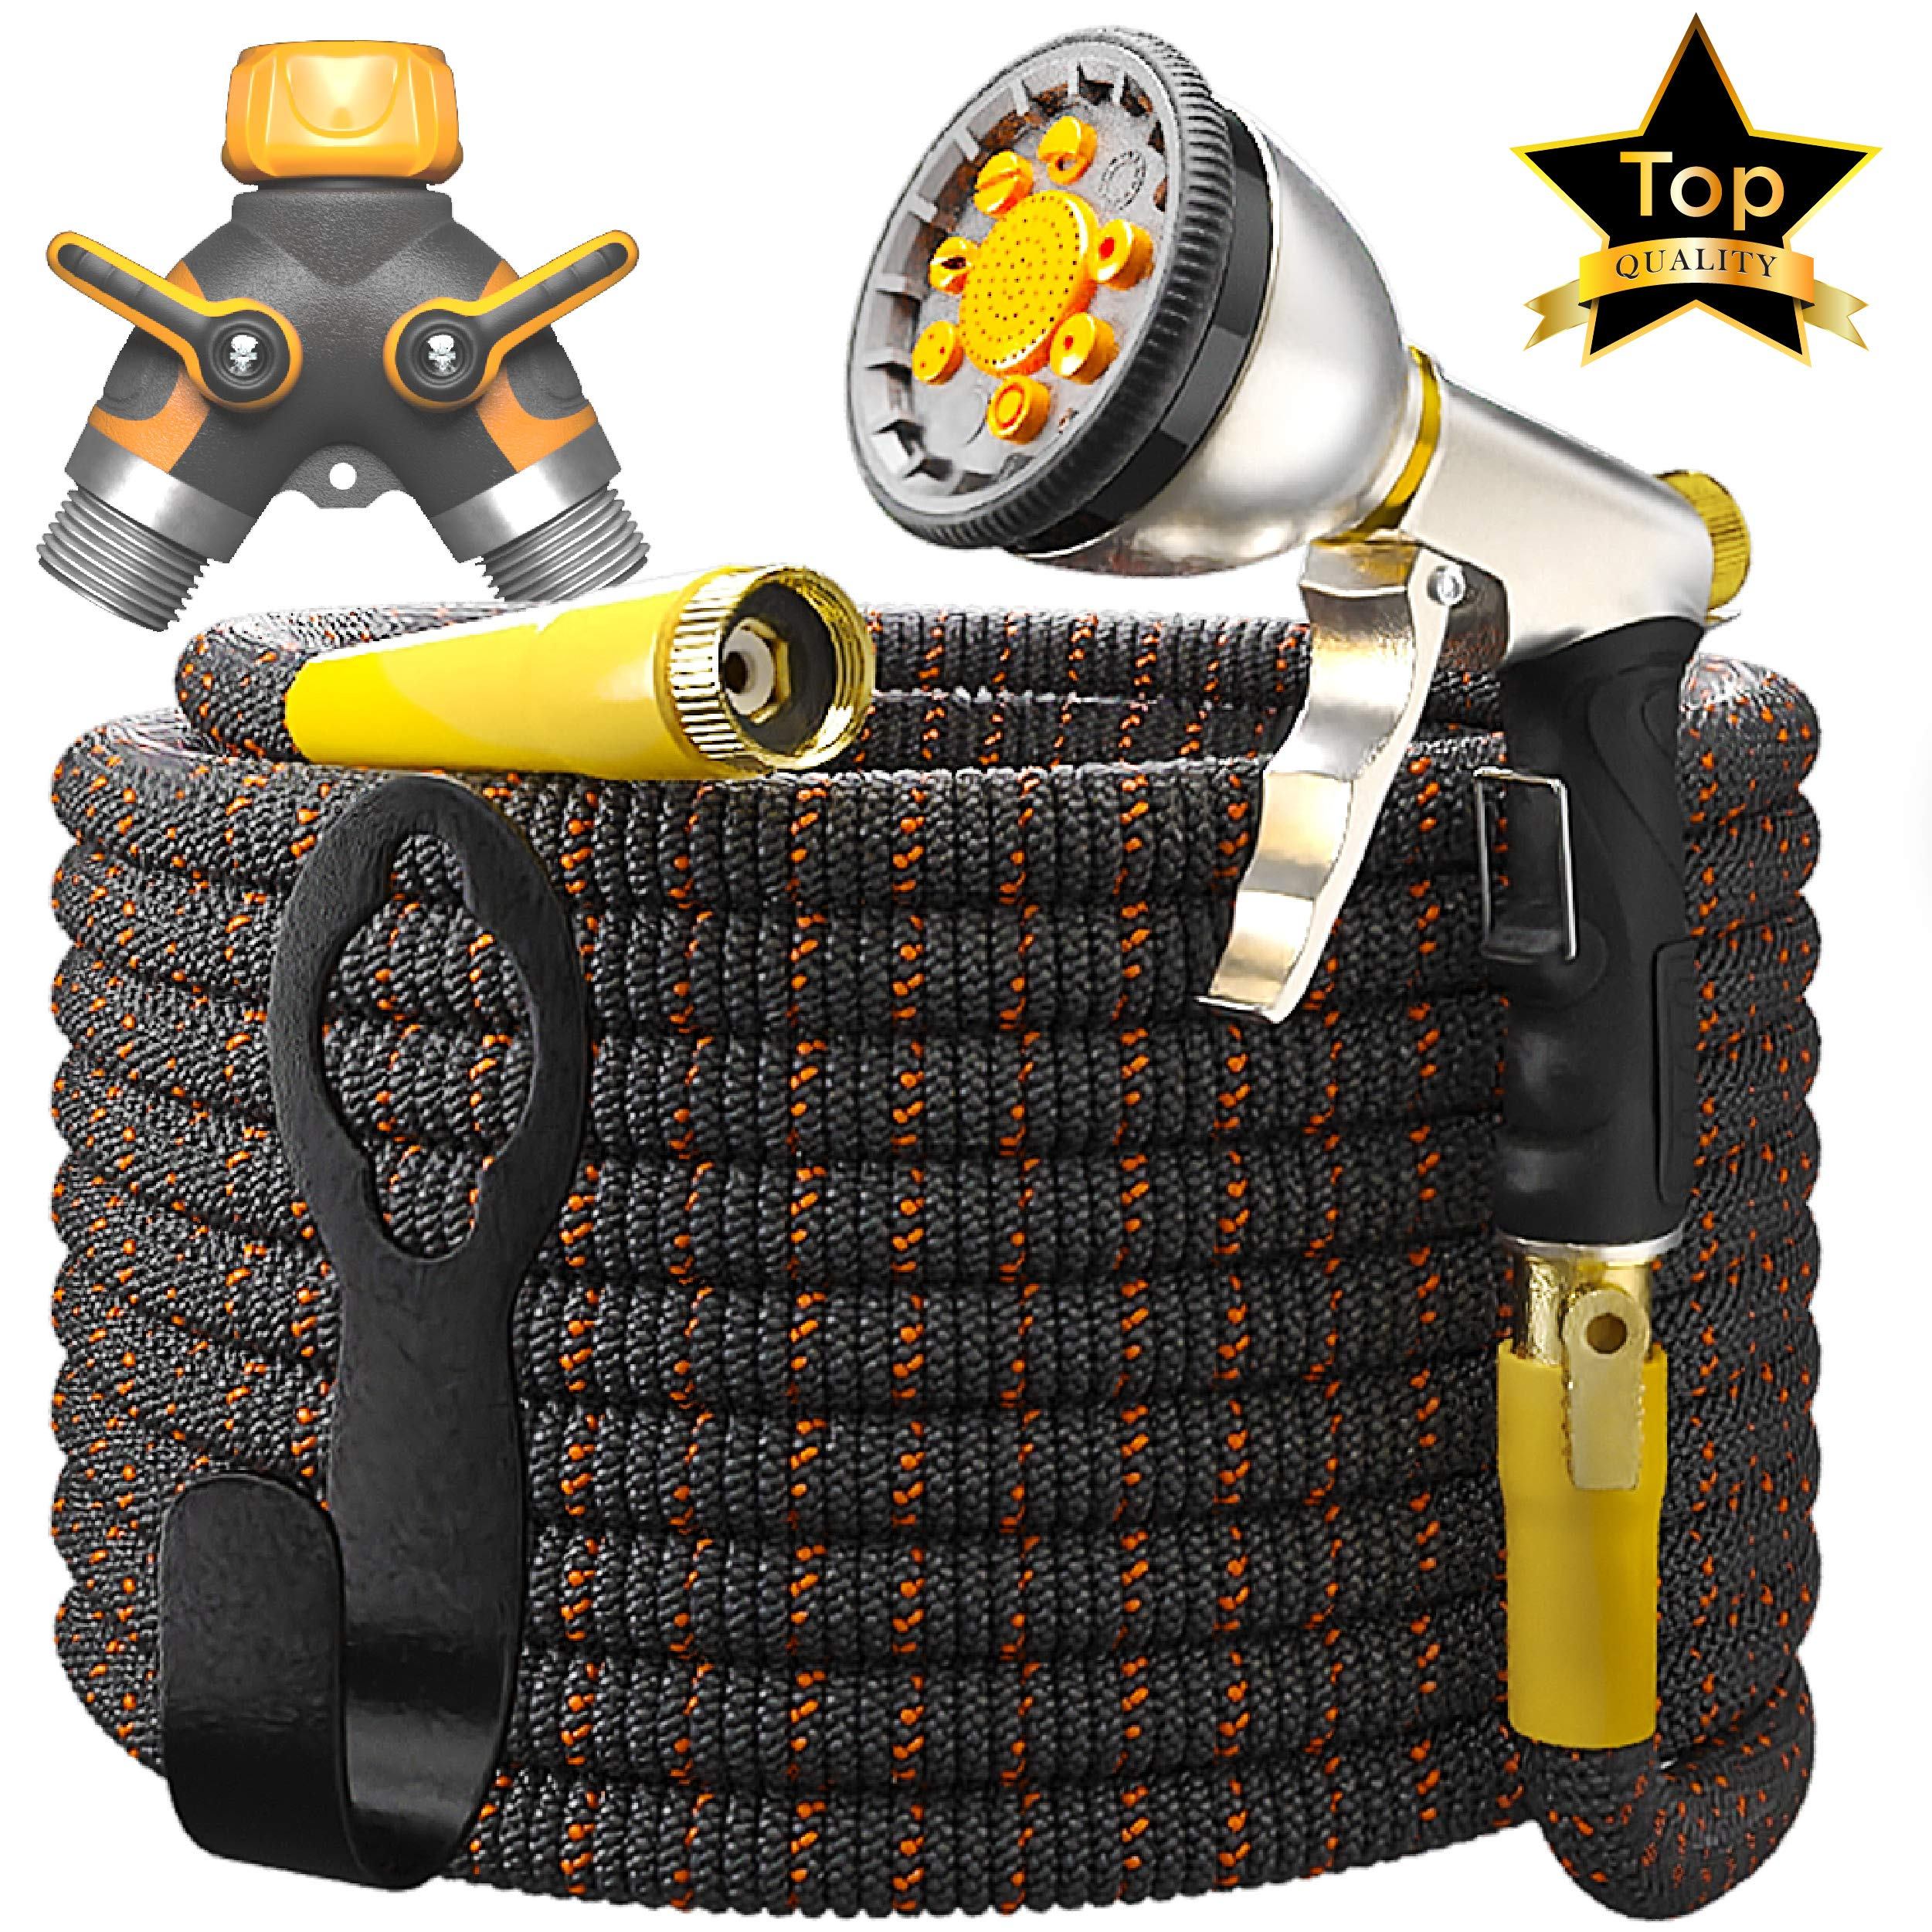 [UPGRADED 2019] 50 Feet Expandable Garden Water Hose - Superior Strength 3750D | 4-Layers Latex | Extra-Strong Brass Connectors | 10-Way Durable Zinc Spray Nozzle, 2-Way Pocket Flexible Splitter by TBI Pro (Image #1)